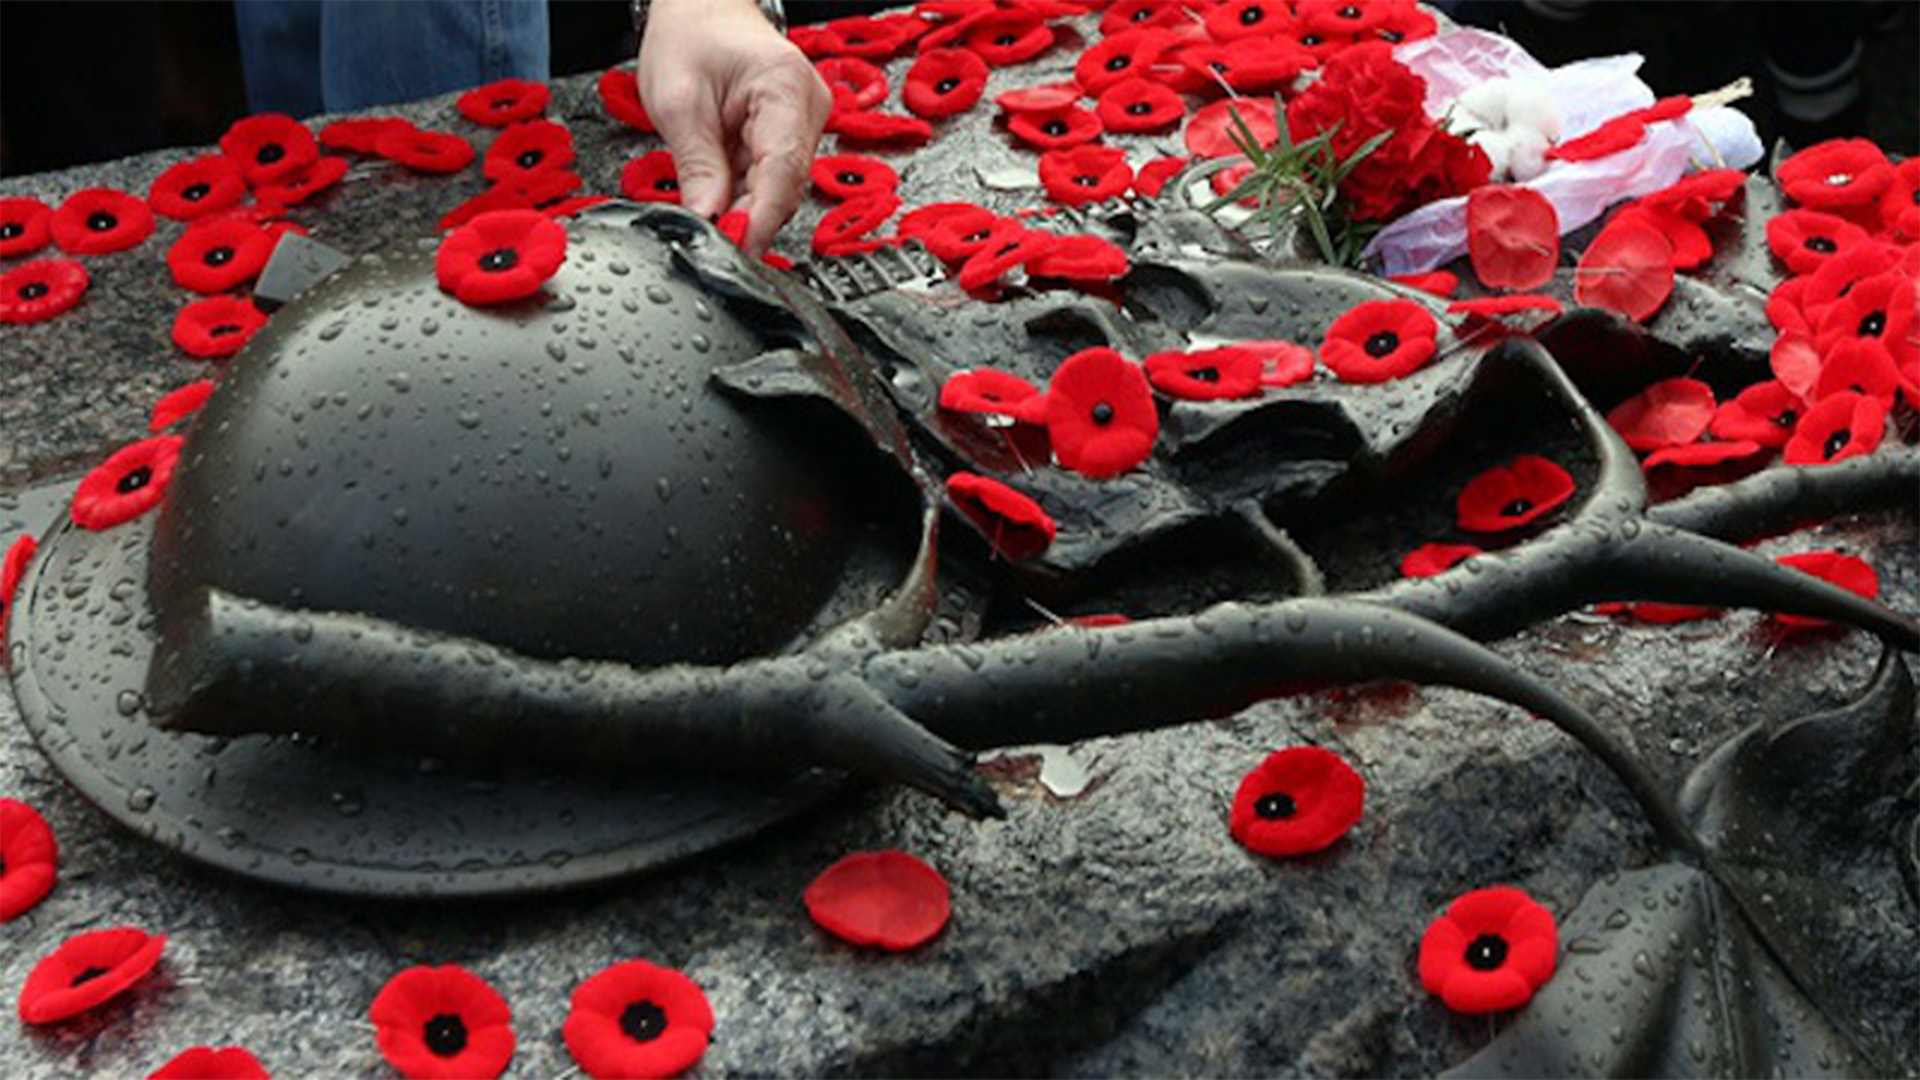 an analysis of the remembrance day of the sufferers of war in canada By 1920, when guerin, with the help of the american legion, established the first poppy sale in the us, the flower was well known in the allied countries — america, britain, france, canada, australia and new zealand — as the flower of remembrance.